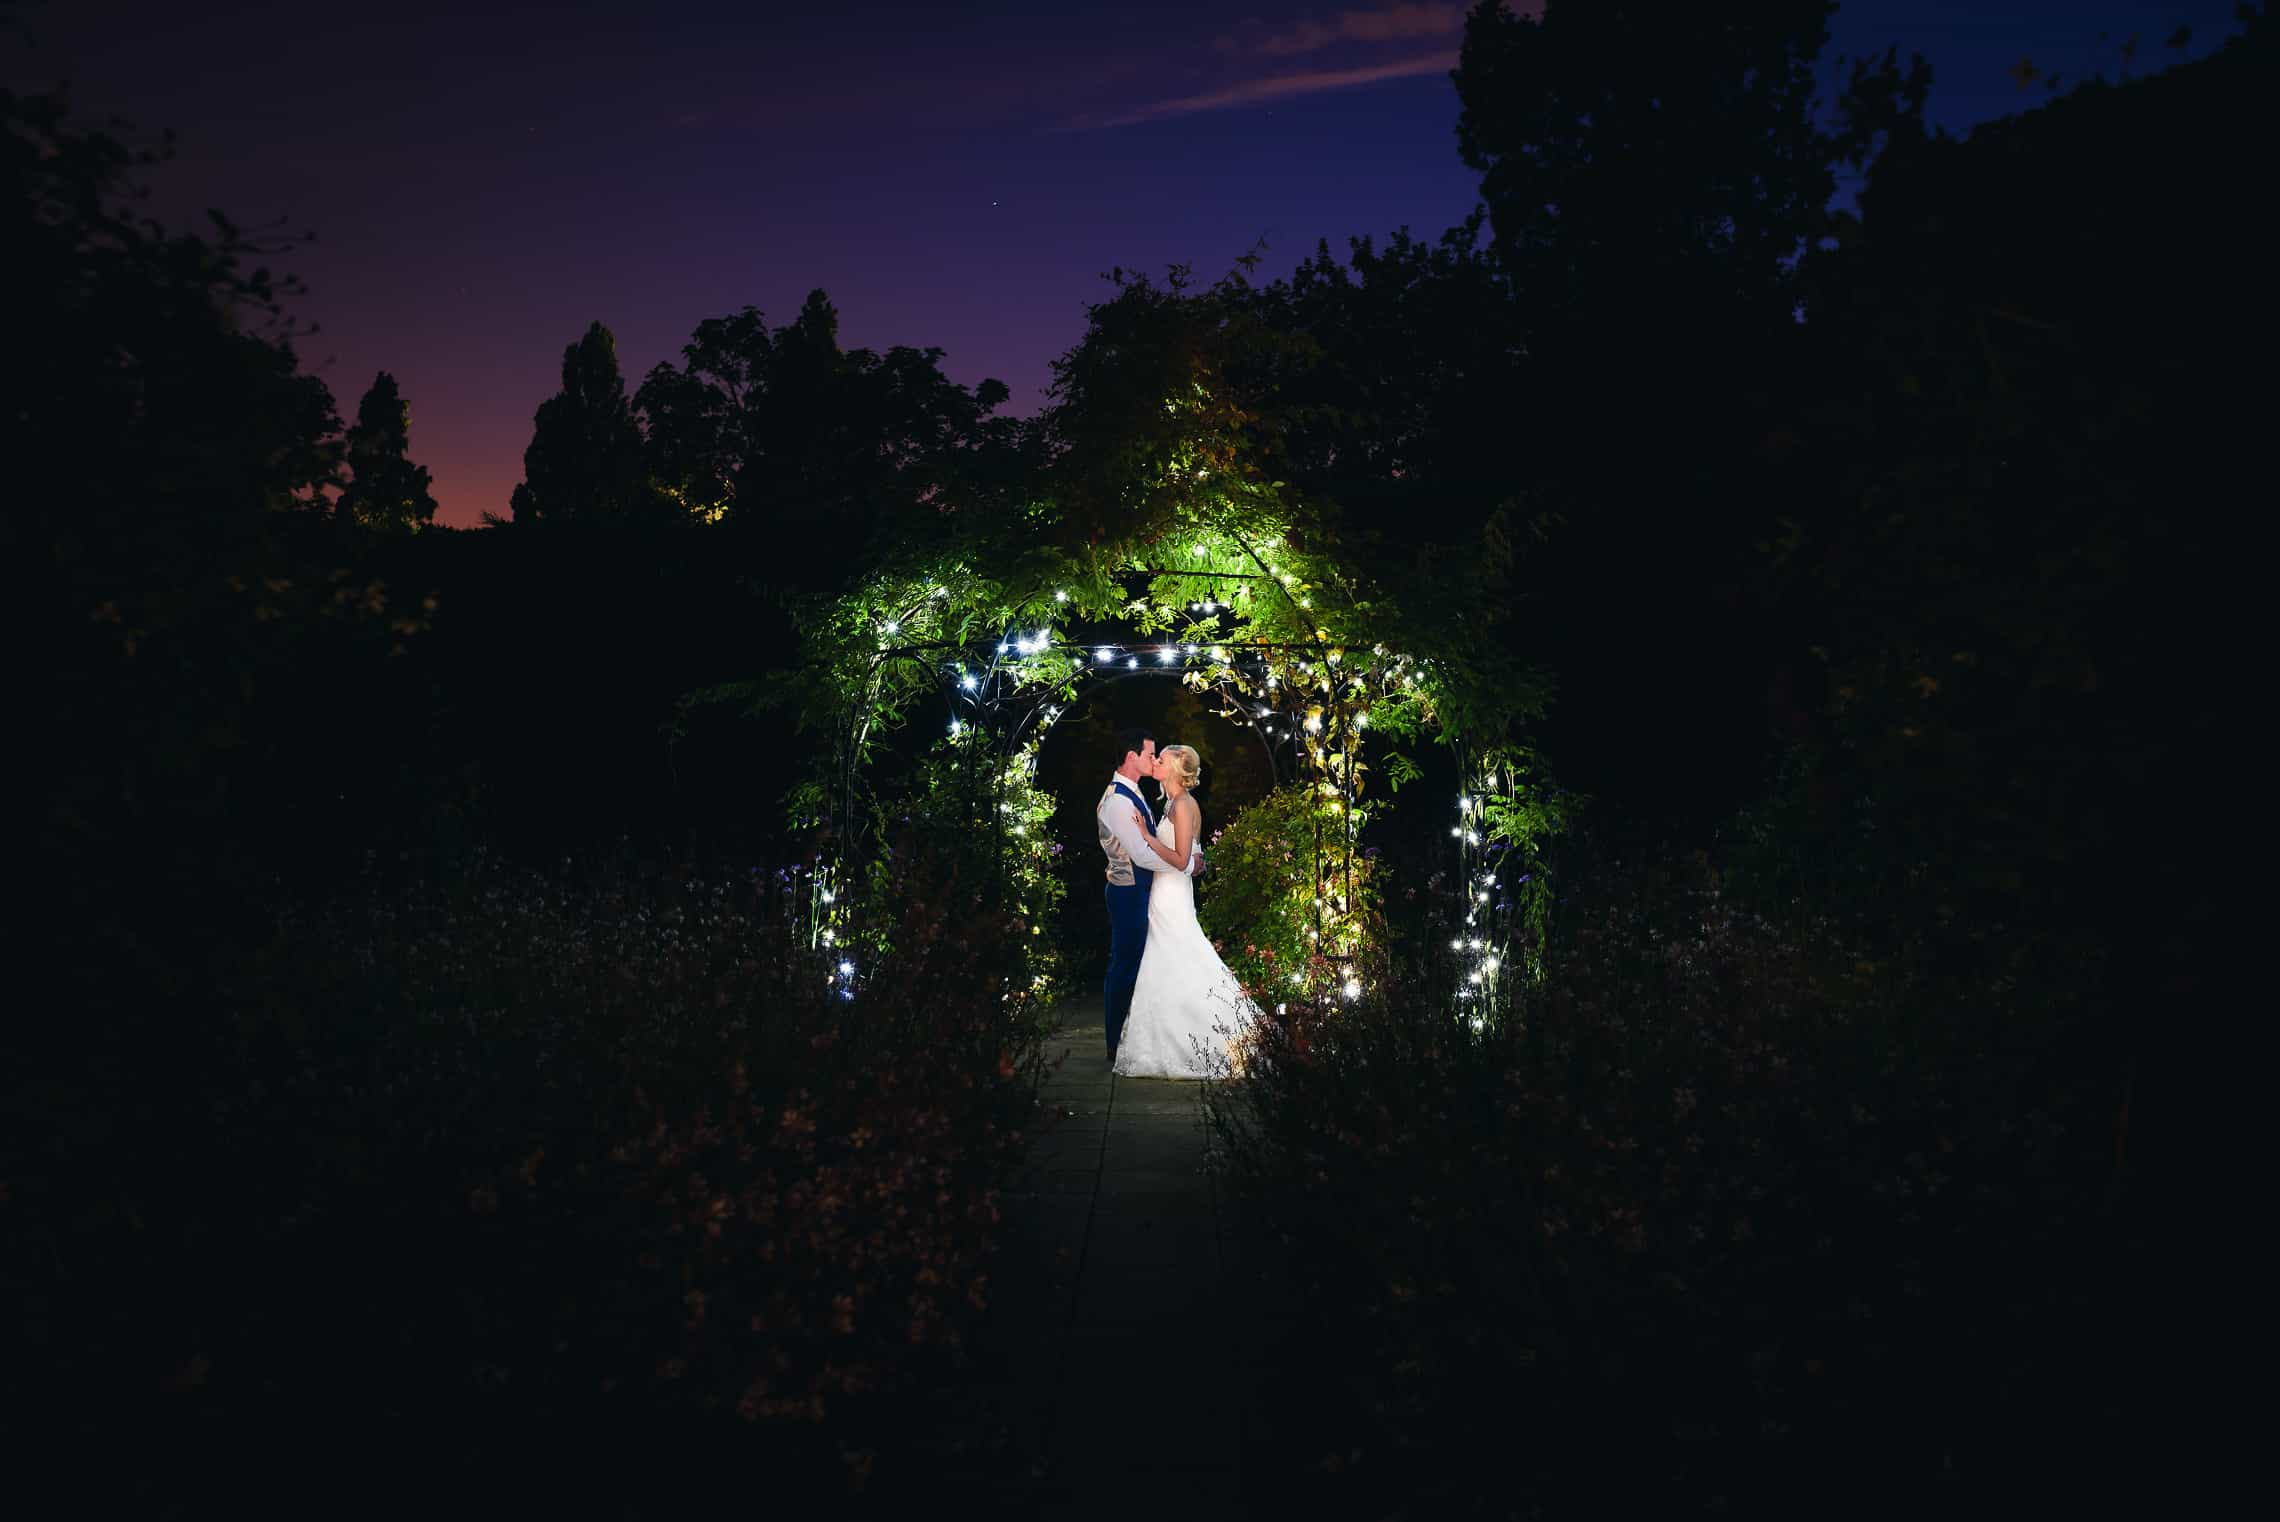 gaynes_park_wedding_lm_justin_bailey_photography_020